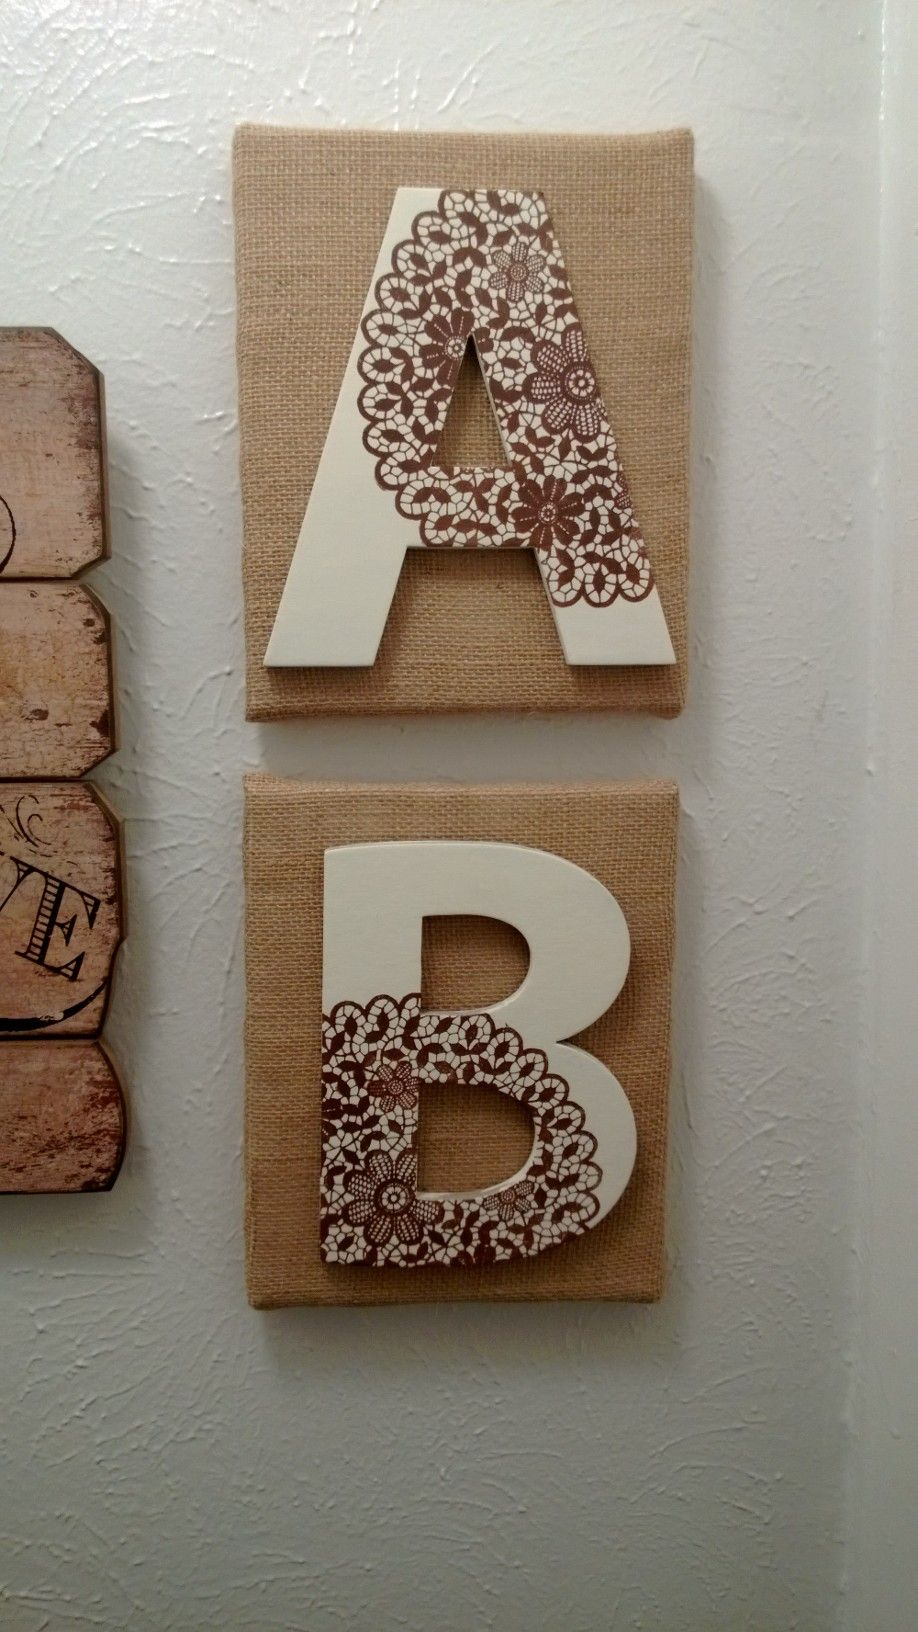 Pin By Darcy Southworth On Decorating Ideas Burlap Crafts Diy Letters Letter A Crafts